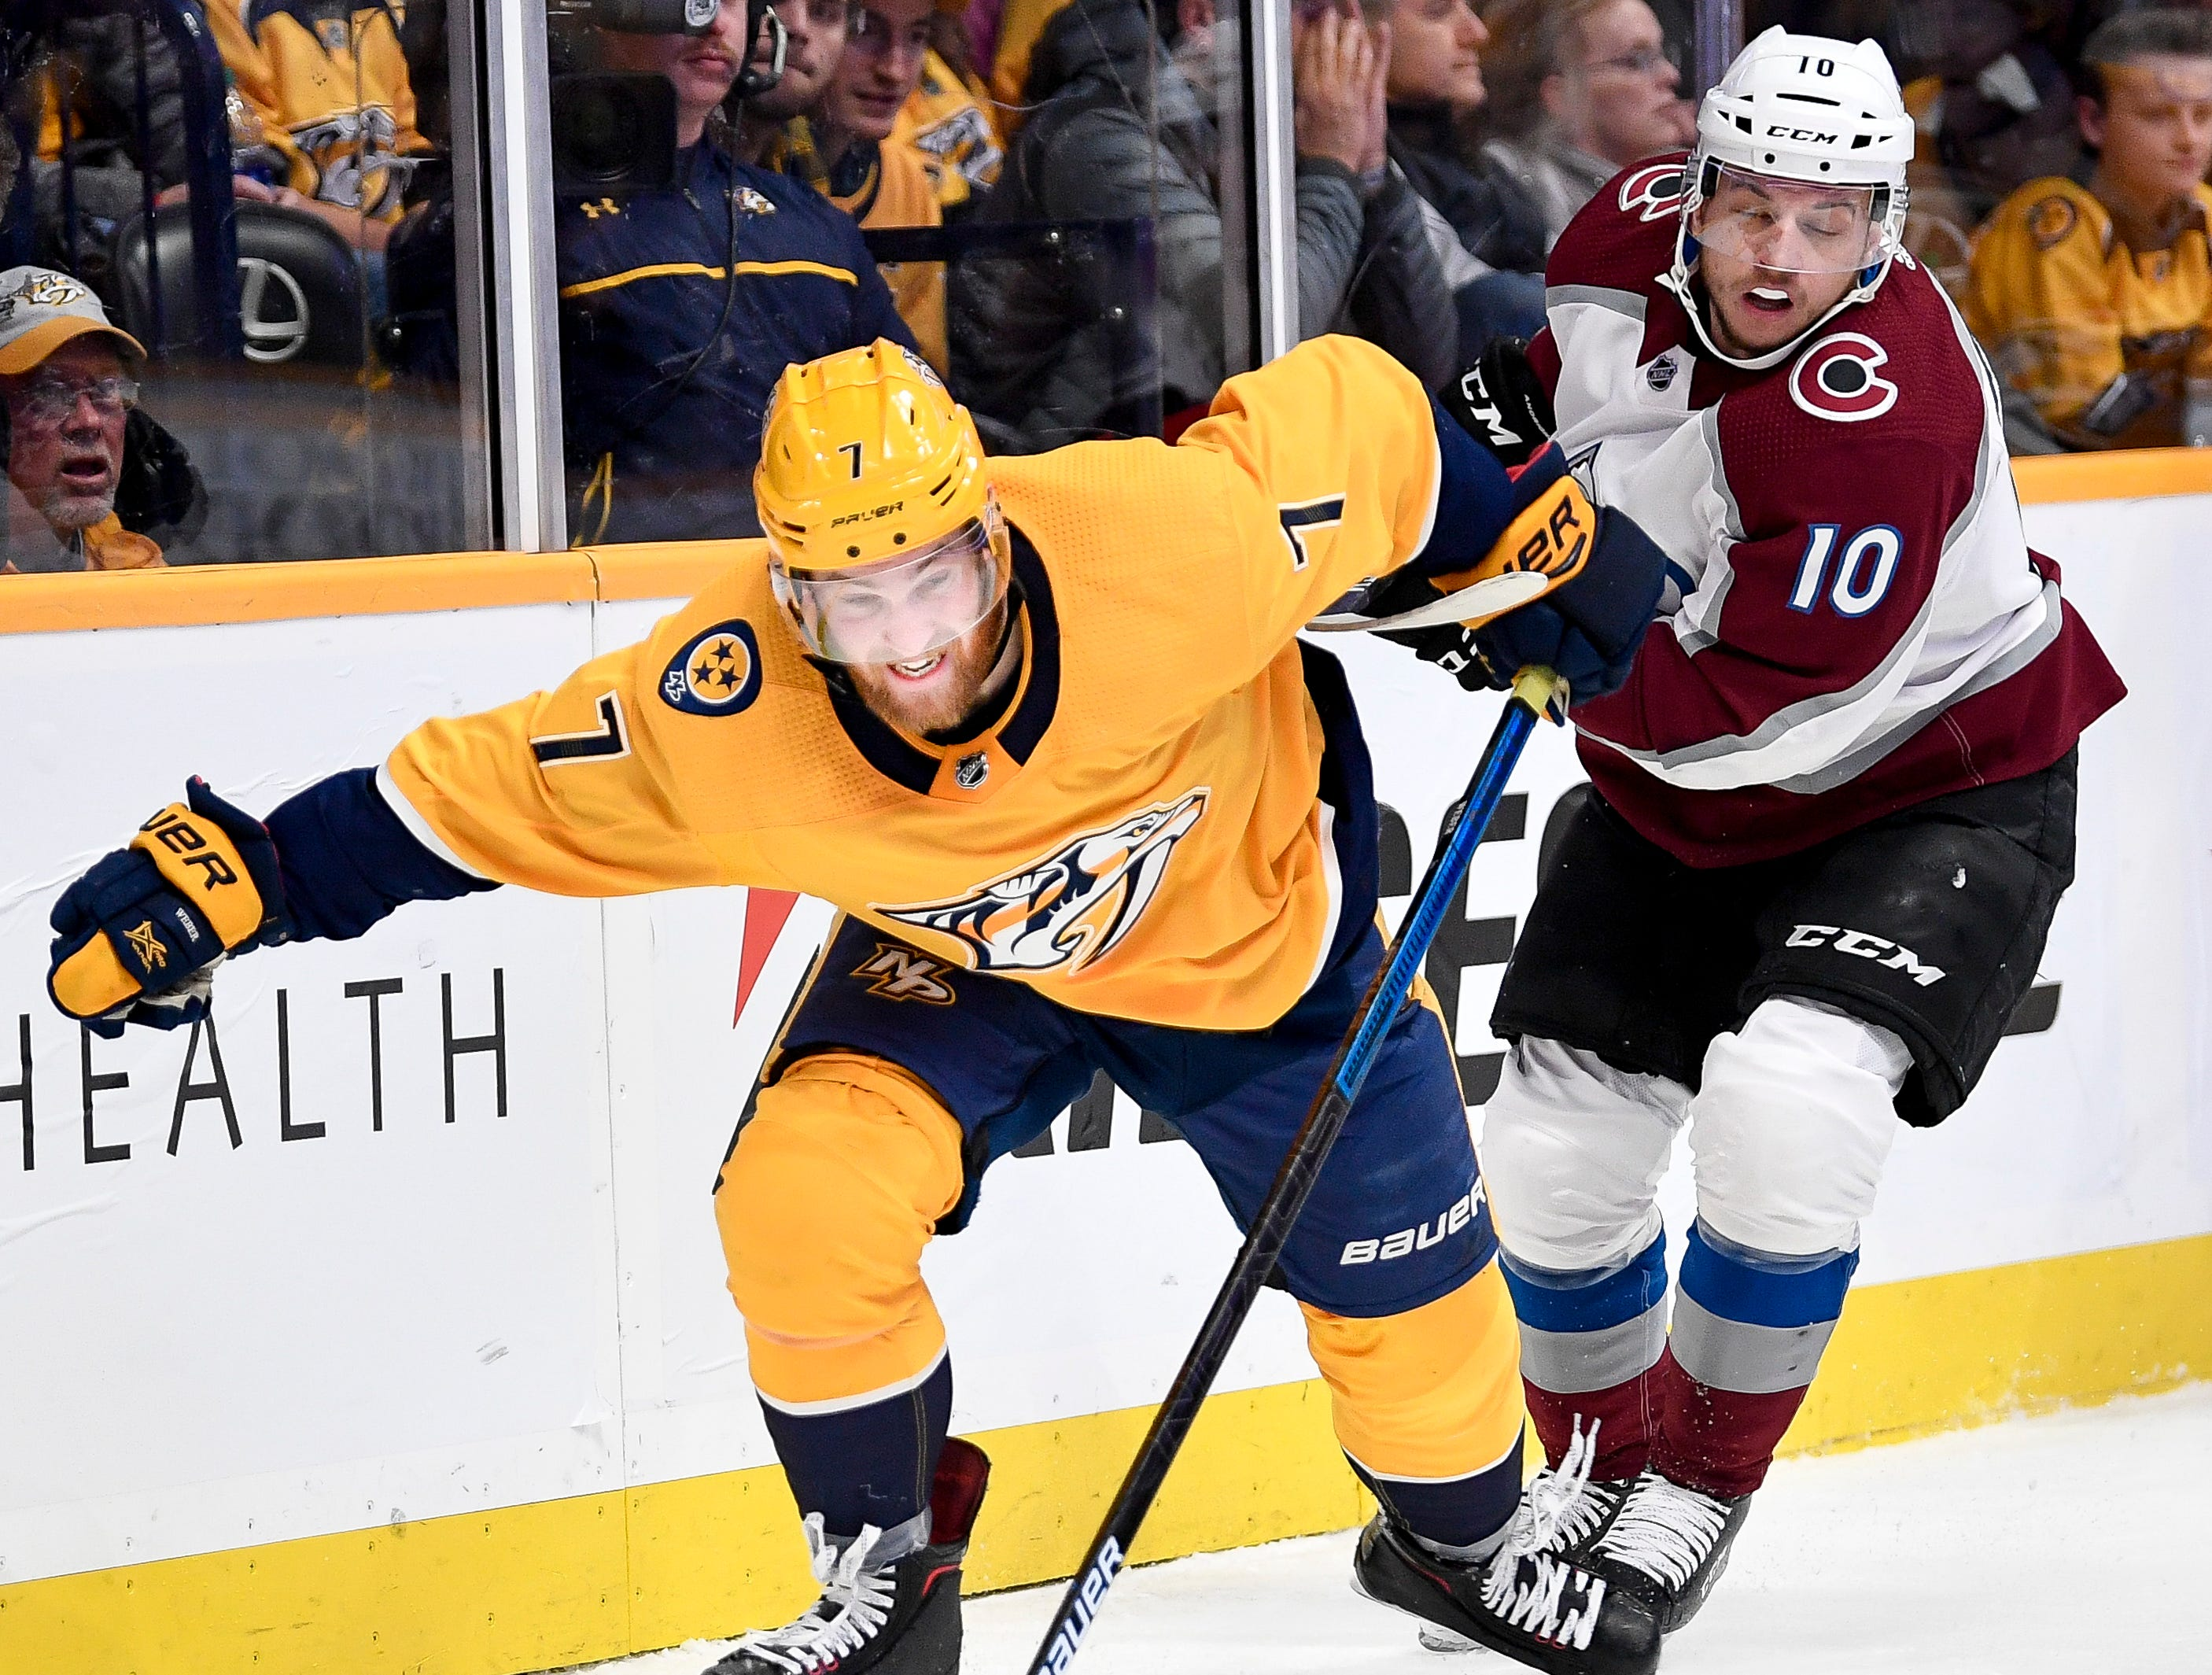 Nashville Predators defenseman Yannick Weber (7) chases the puck with Colorado Avalanche right wing Sven Andrighetto (10) during the second period at Bridgestone Arena in Nashville, Tenn., Tuesday, Nov. 27, 2018.